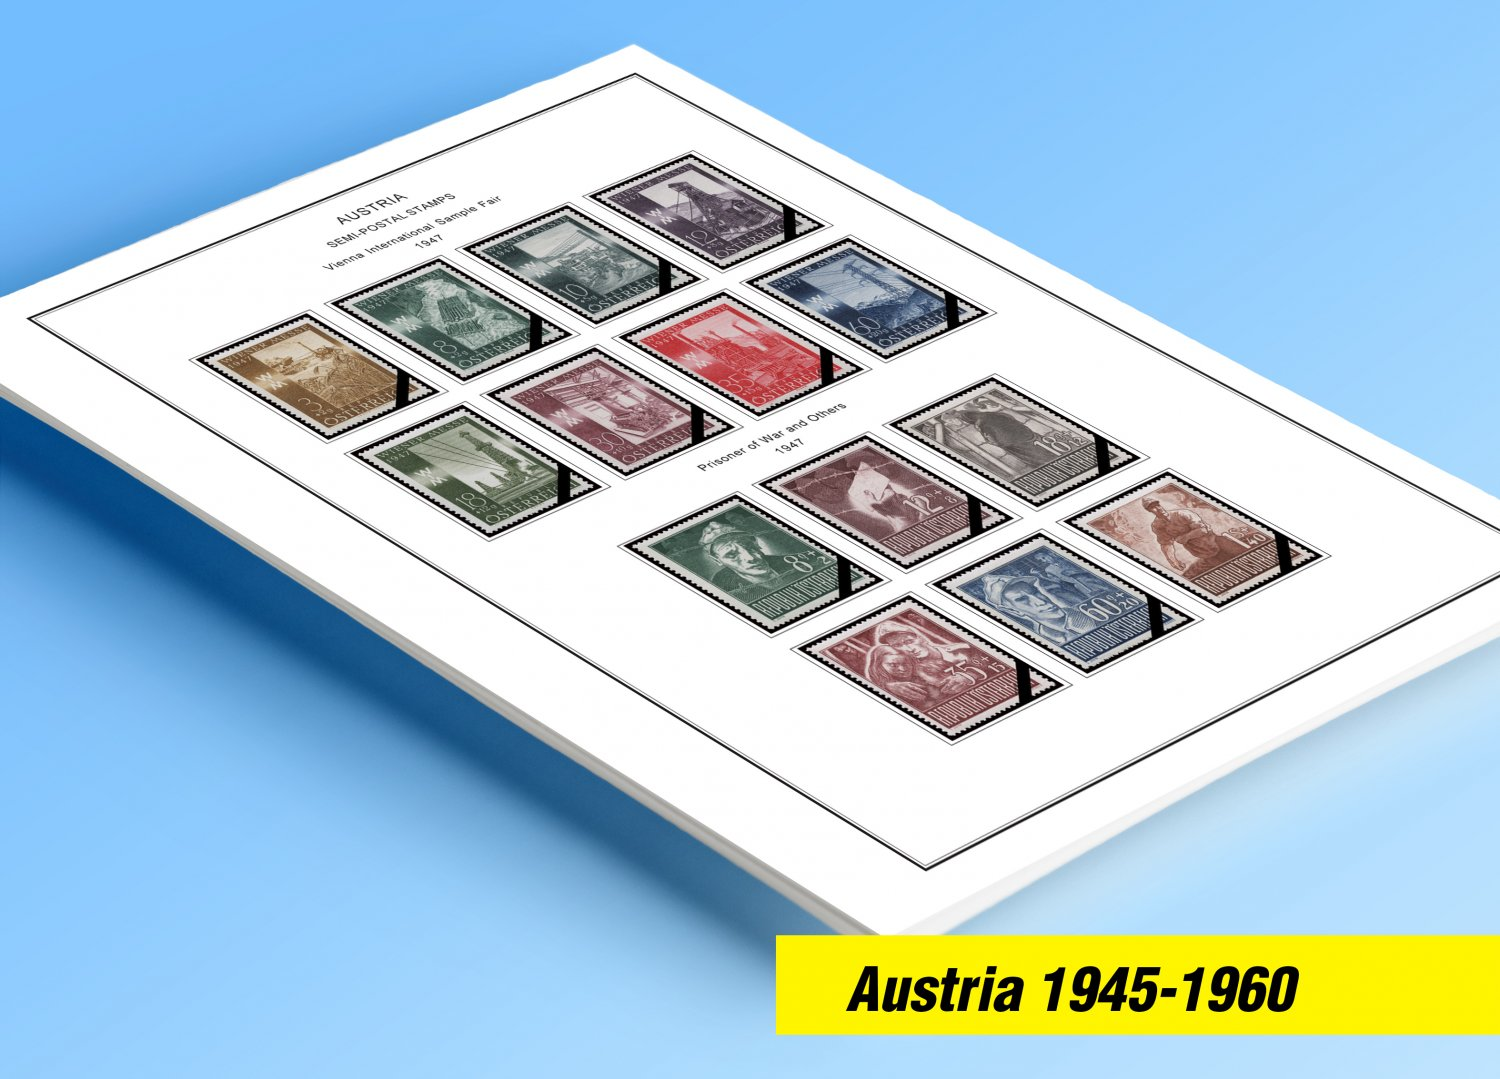 COLOR PRINTED AUSTRIA 1945-1960 STAMP ALBUM PAGES (40 illustrated pages)